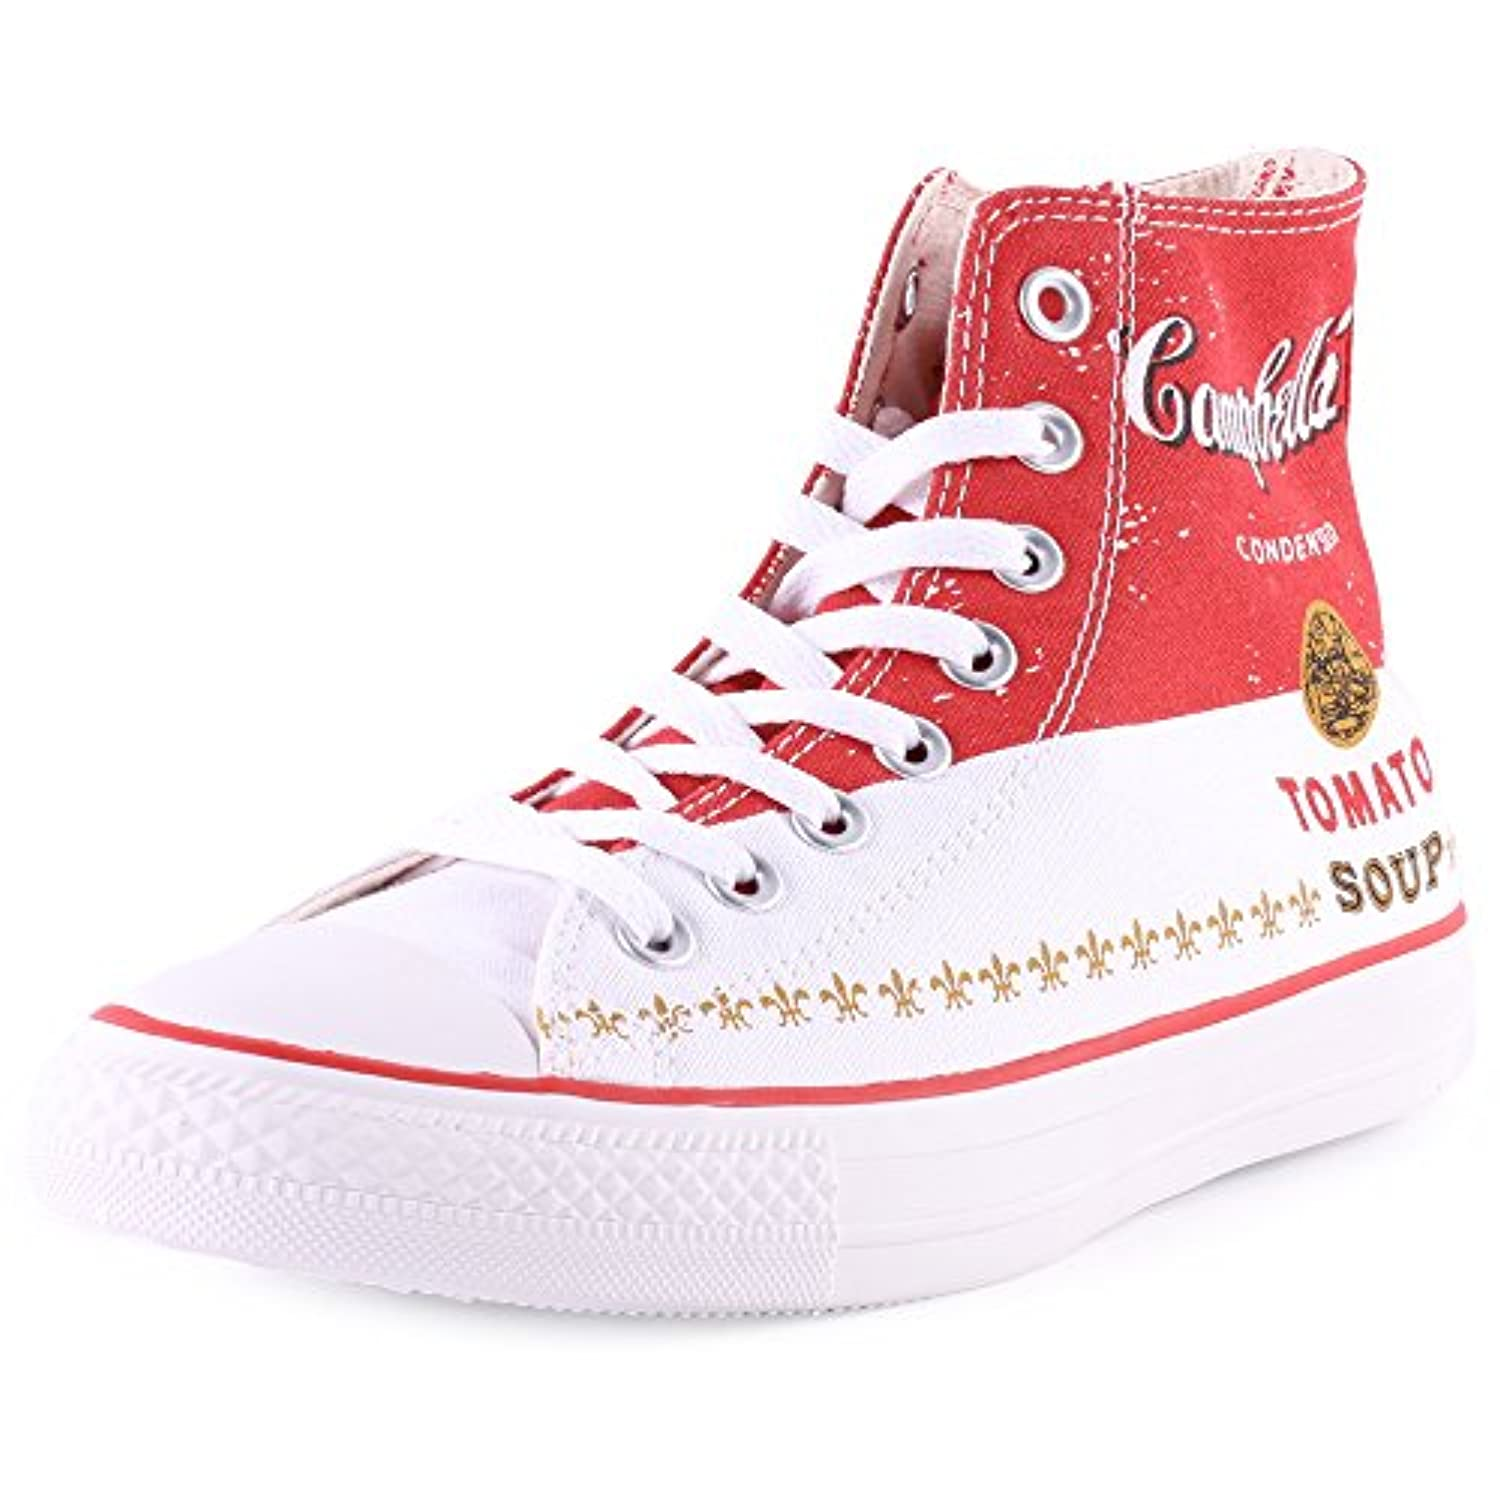 ccc890dd17b302 ... ( Converse Unisex Andy Warhol Campbell s Soup Hi